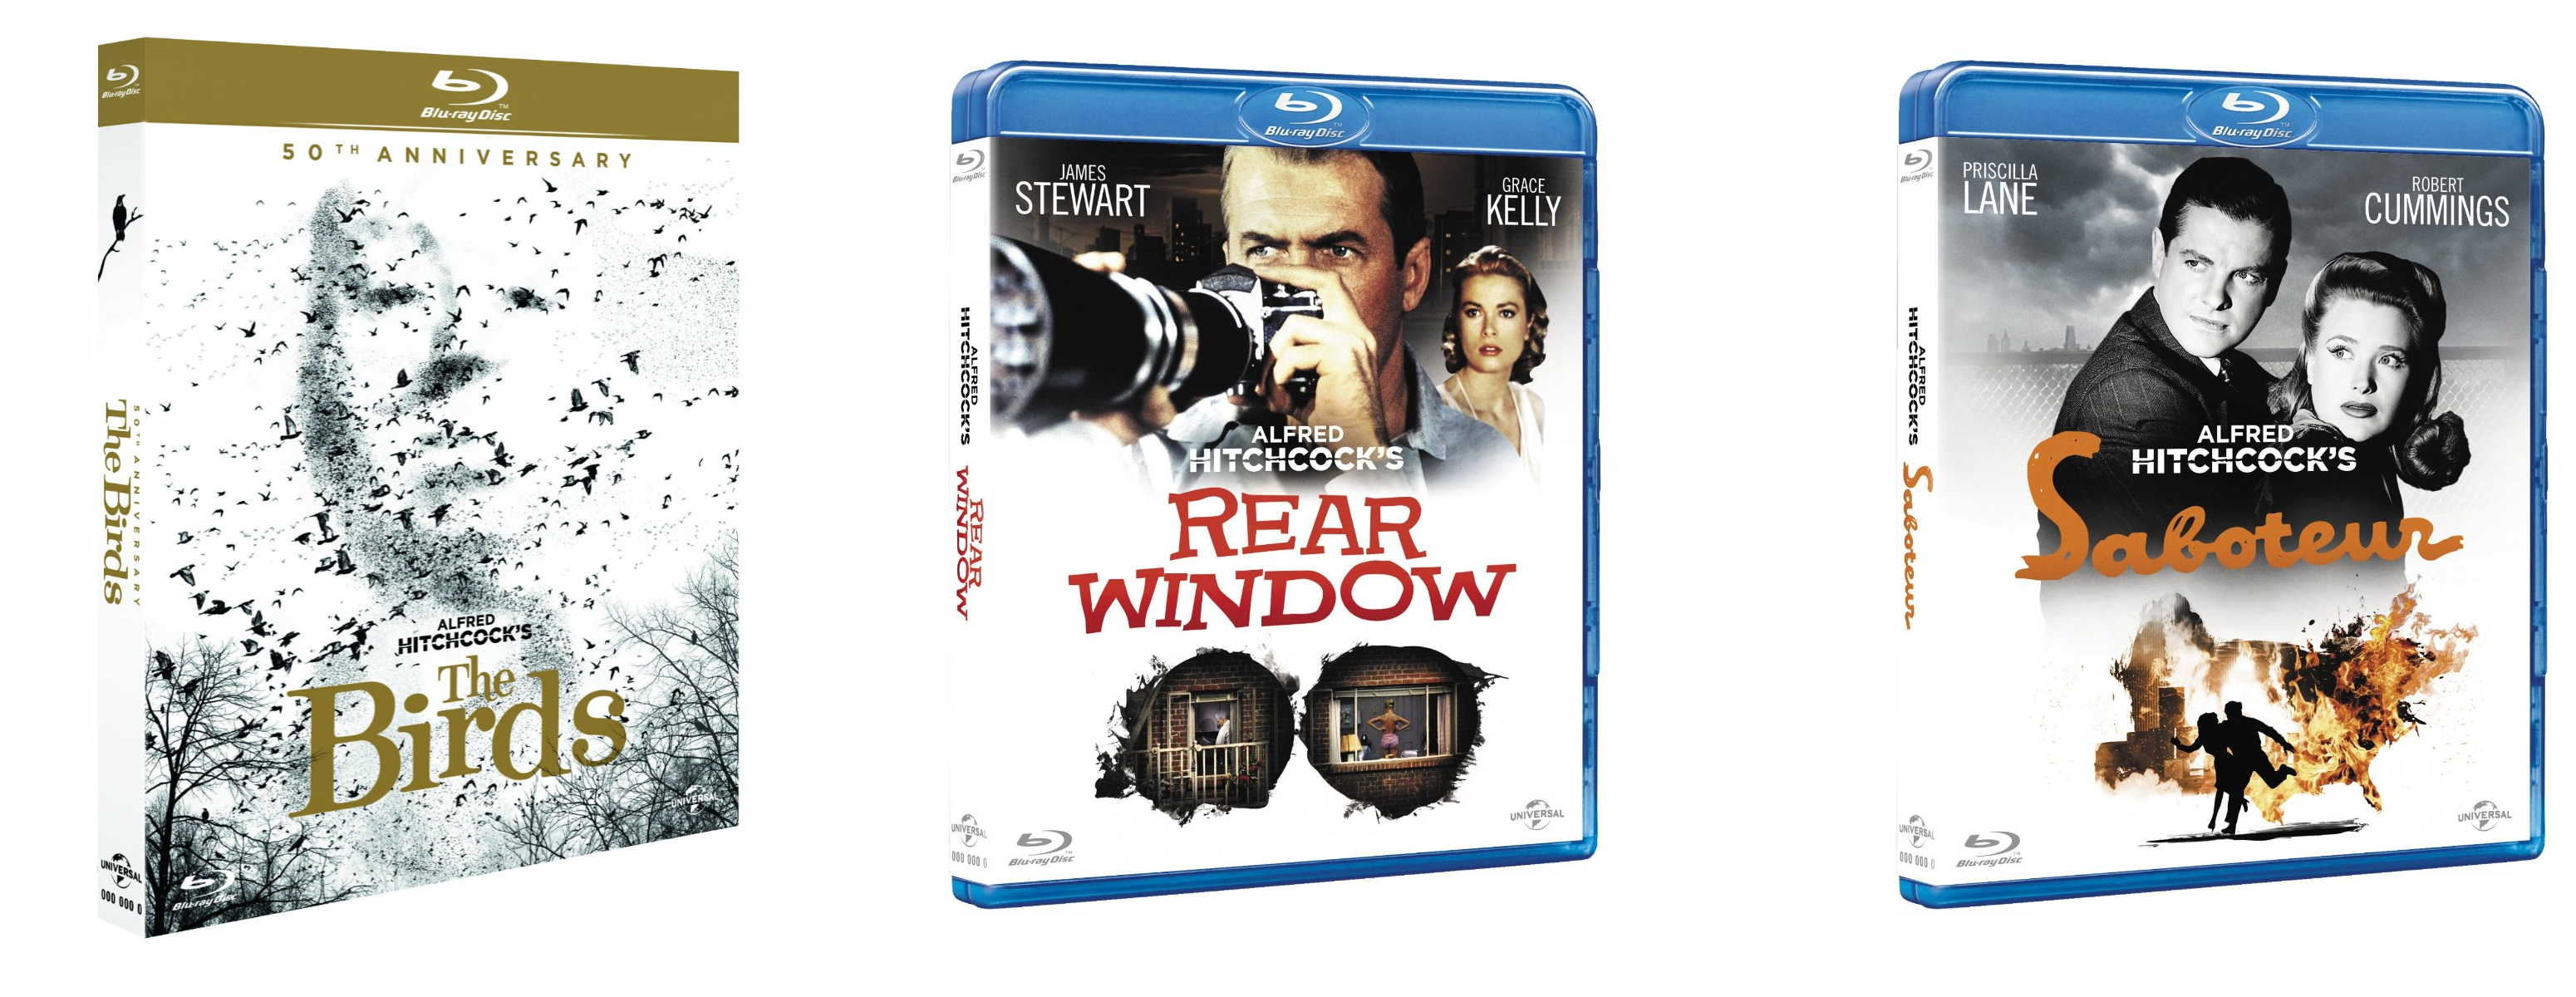 monday blu e s and dvd hope lies at 24 frames per second miscellaneous hitchcock blu ray s the birds rear window and saboteur are all released on blu ray today they re individual repackaging s of the discs